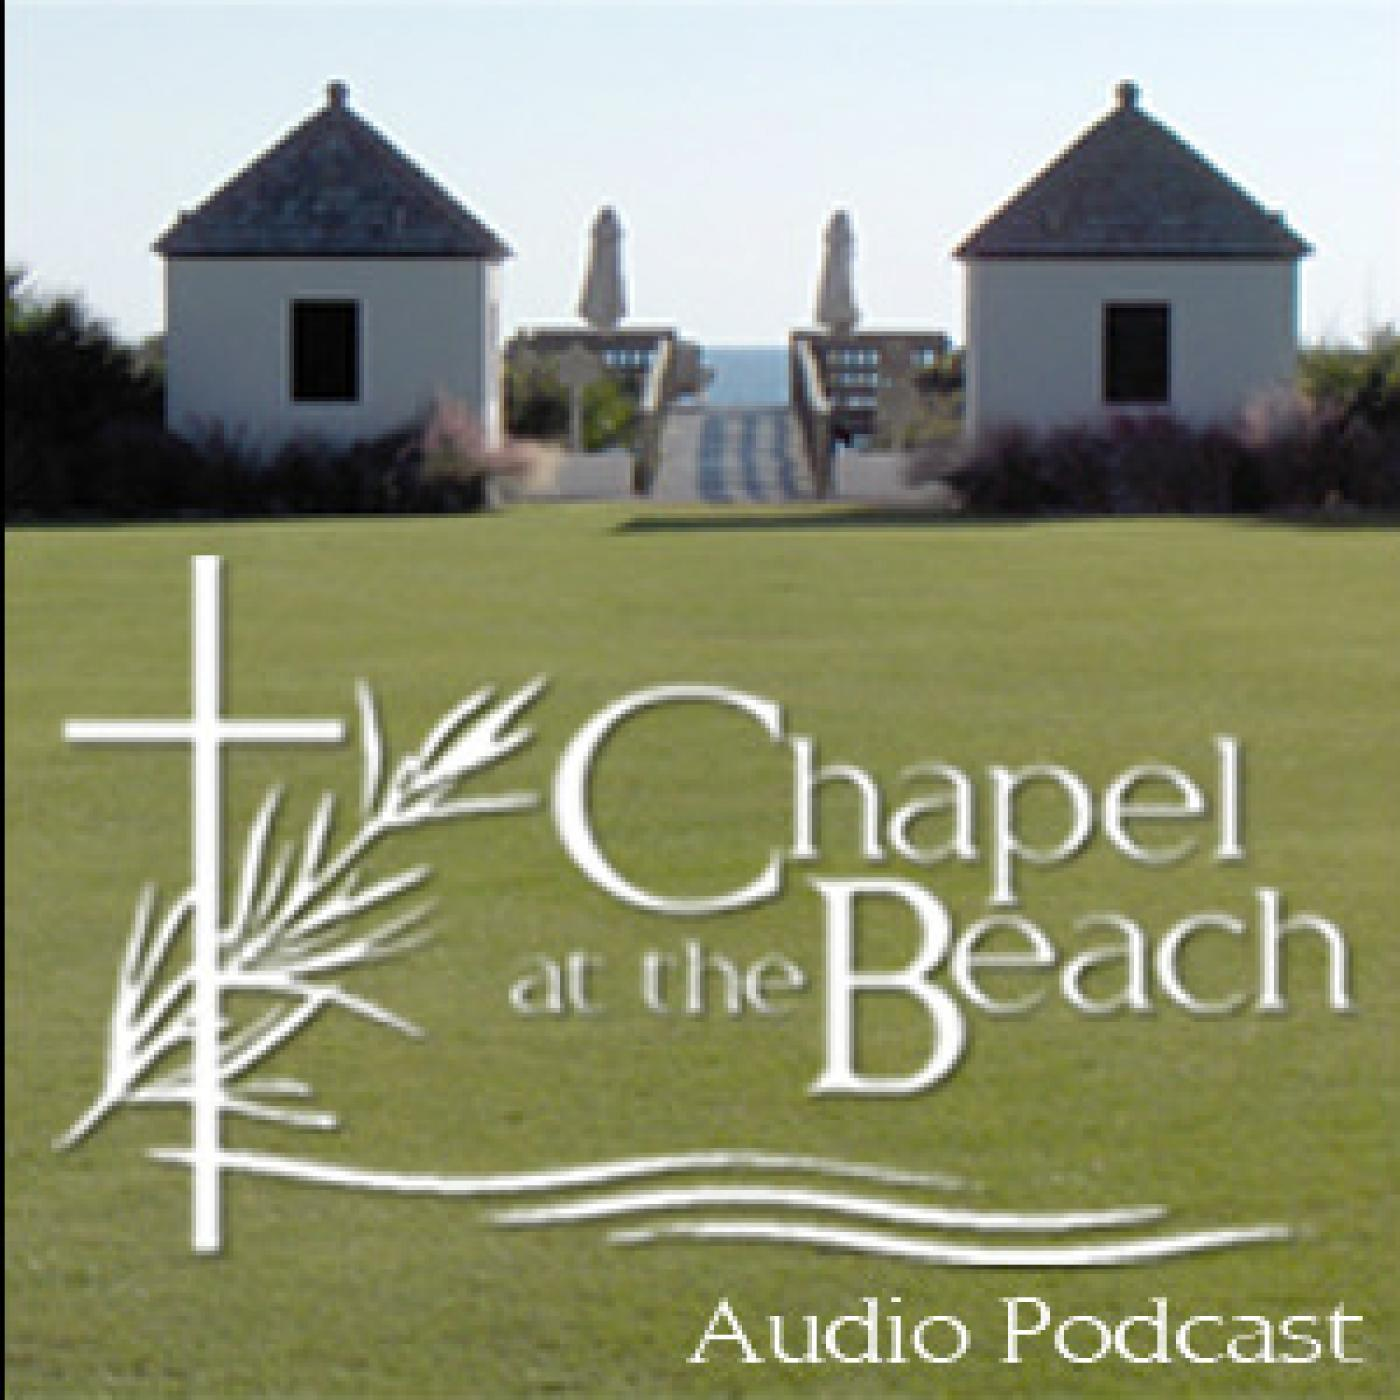 Chapel at the Beach Weekly Services